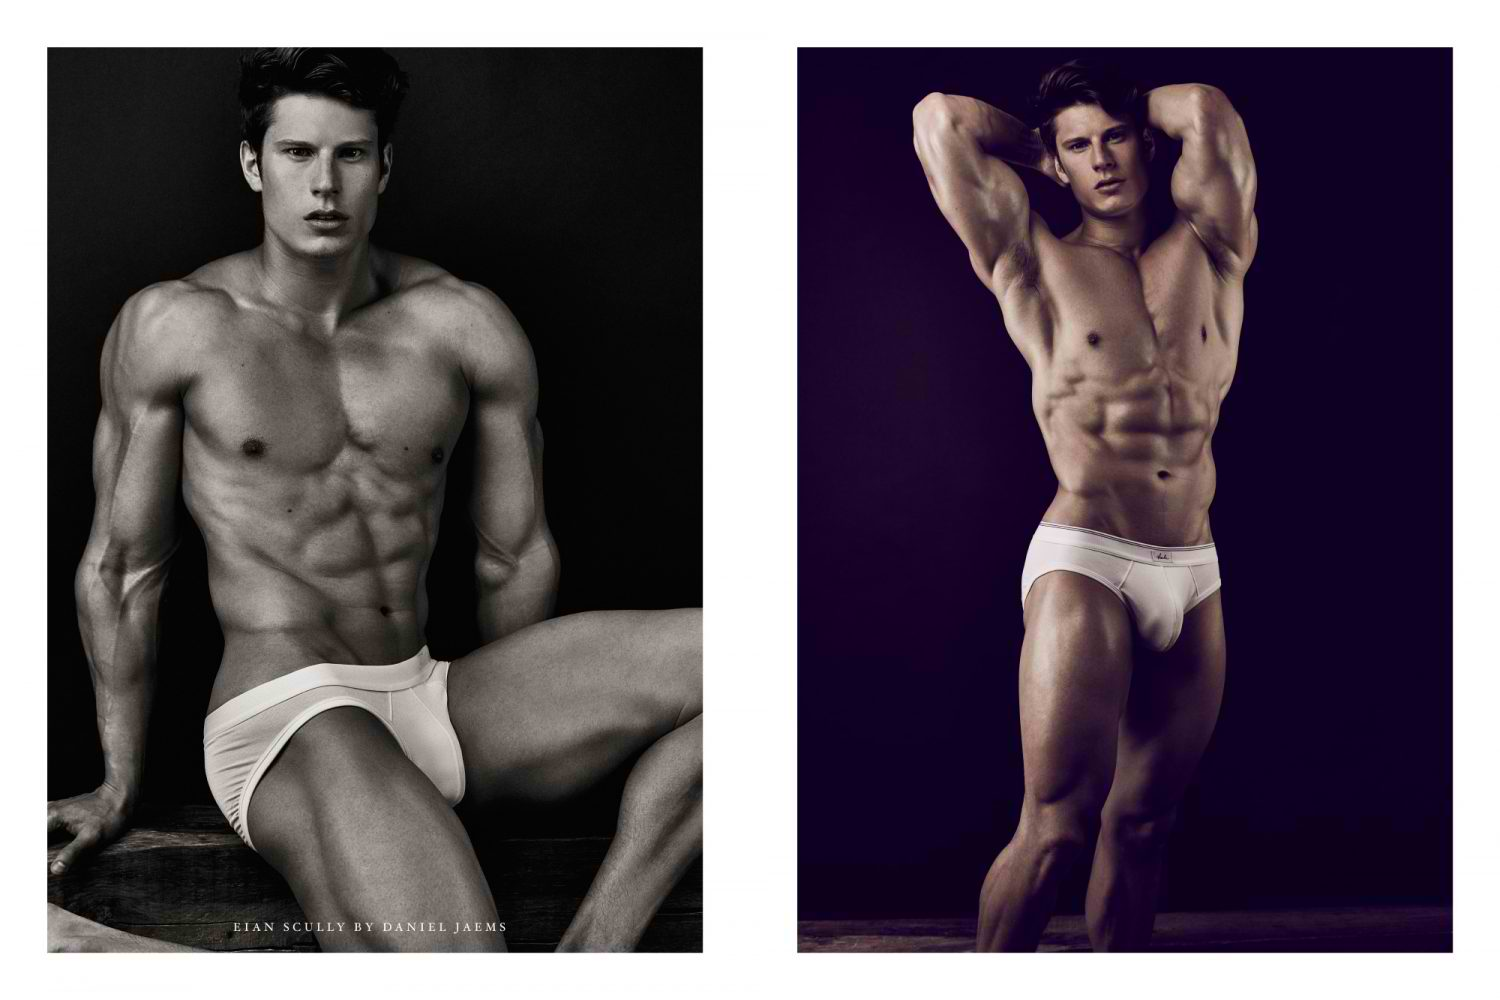 Eian-Scully-by-Daniel-Jaems-Obsession-No17-020-1500x1000